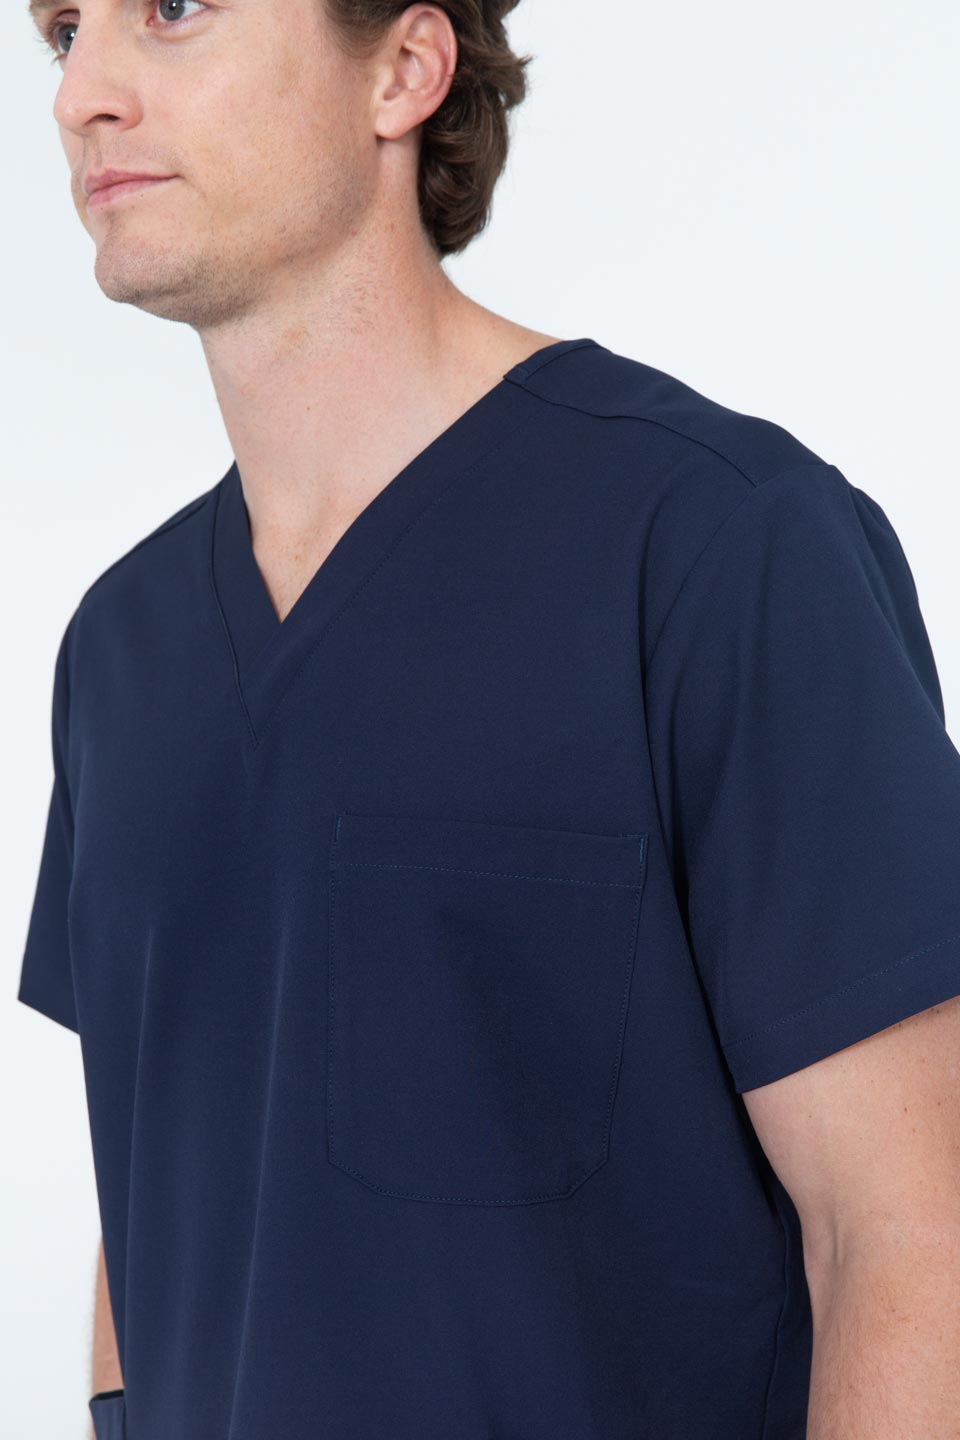 Kalea - Mens Utopia Scrub Top - Navy